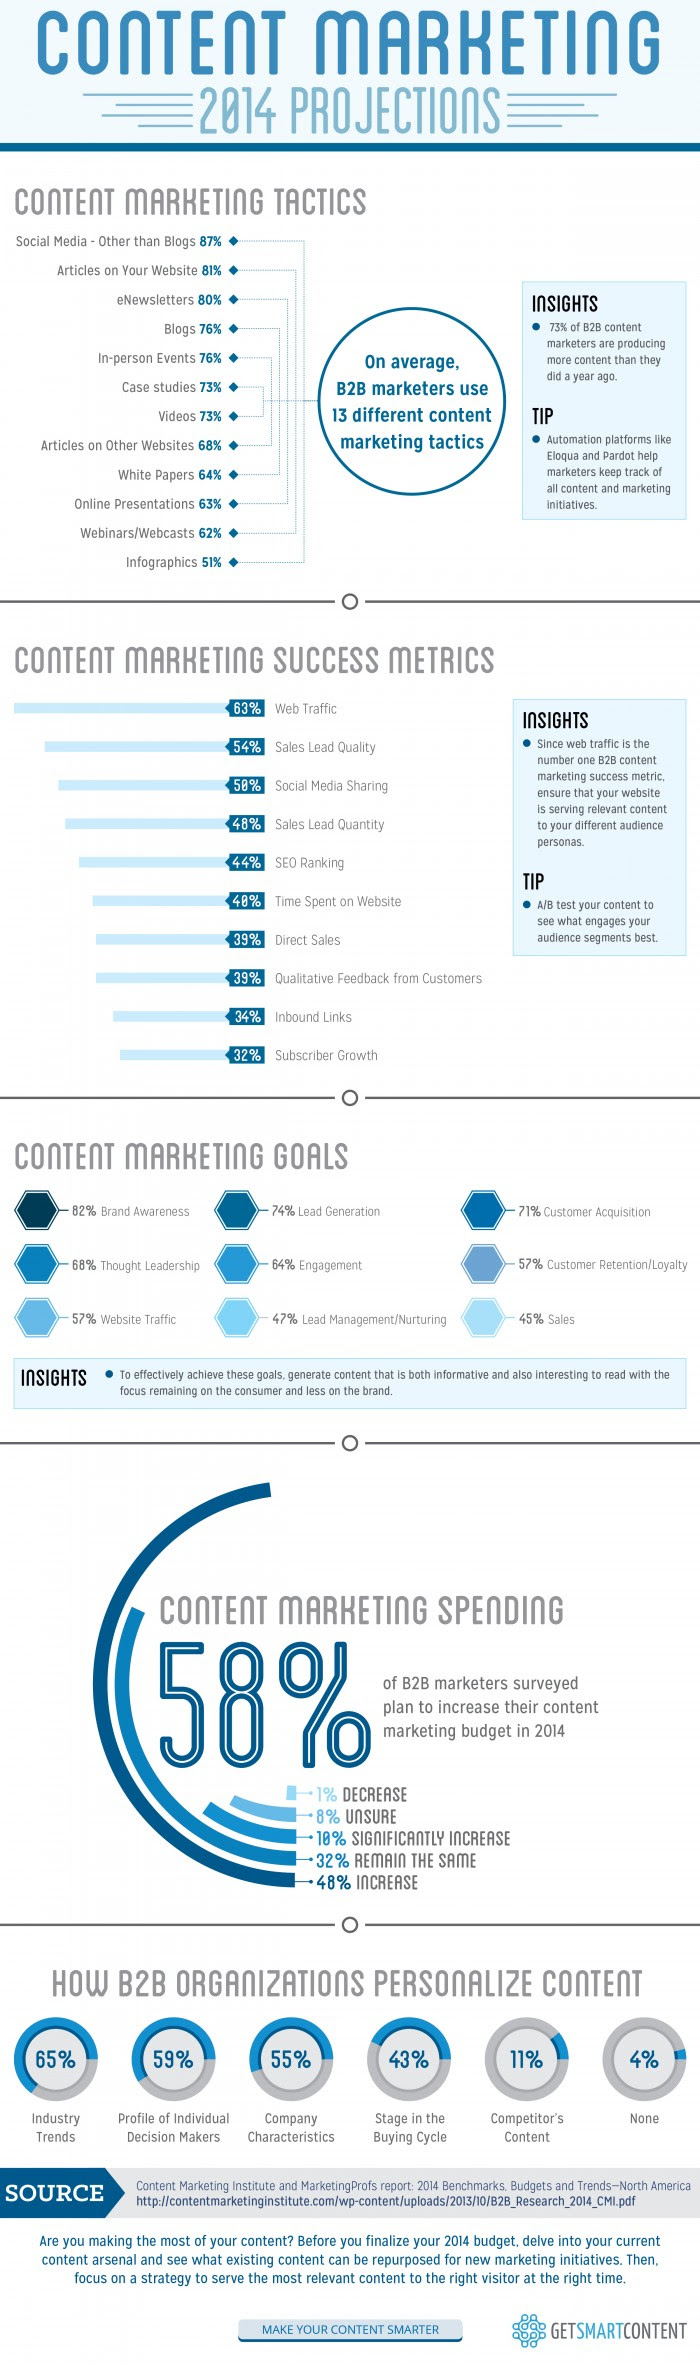 Content Marketing 2014 Projections [INFOGRAPHIC]